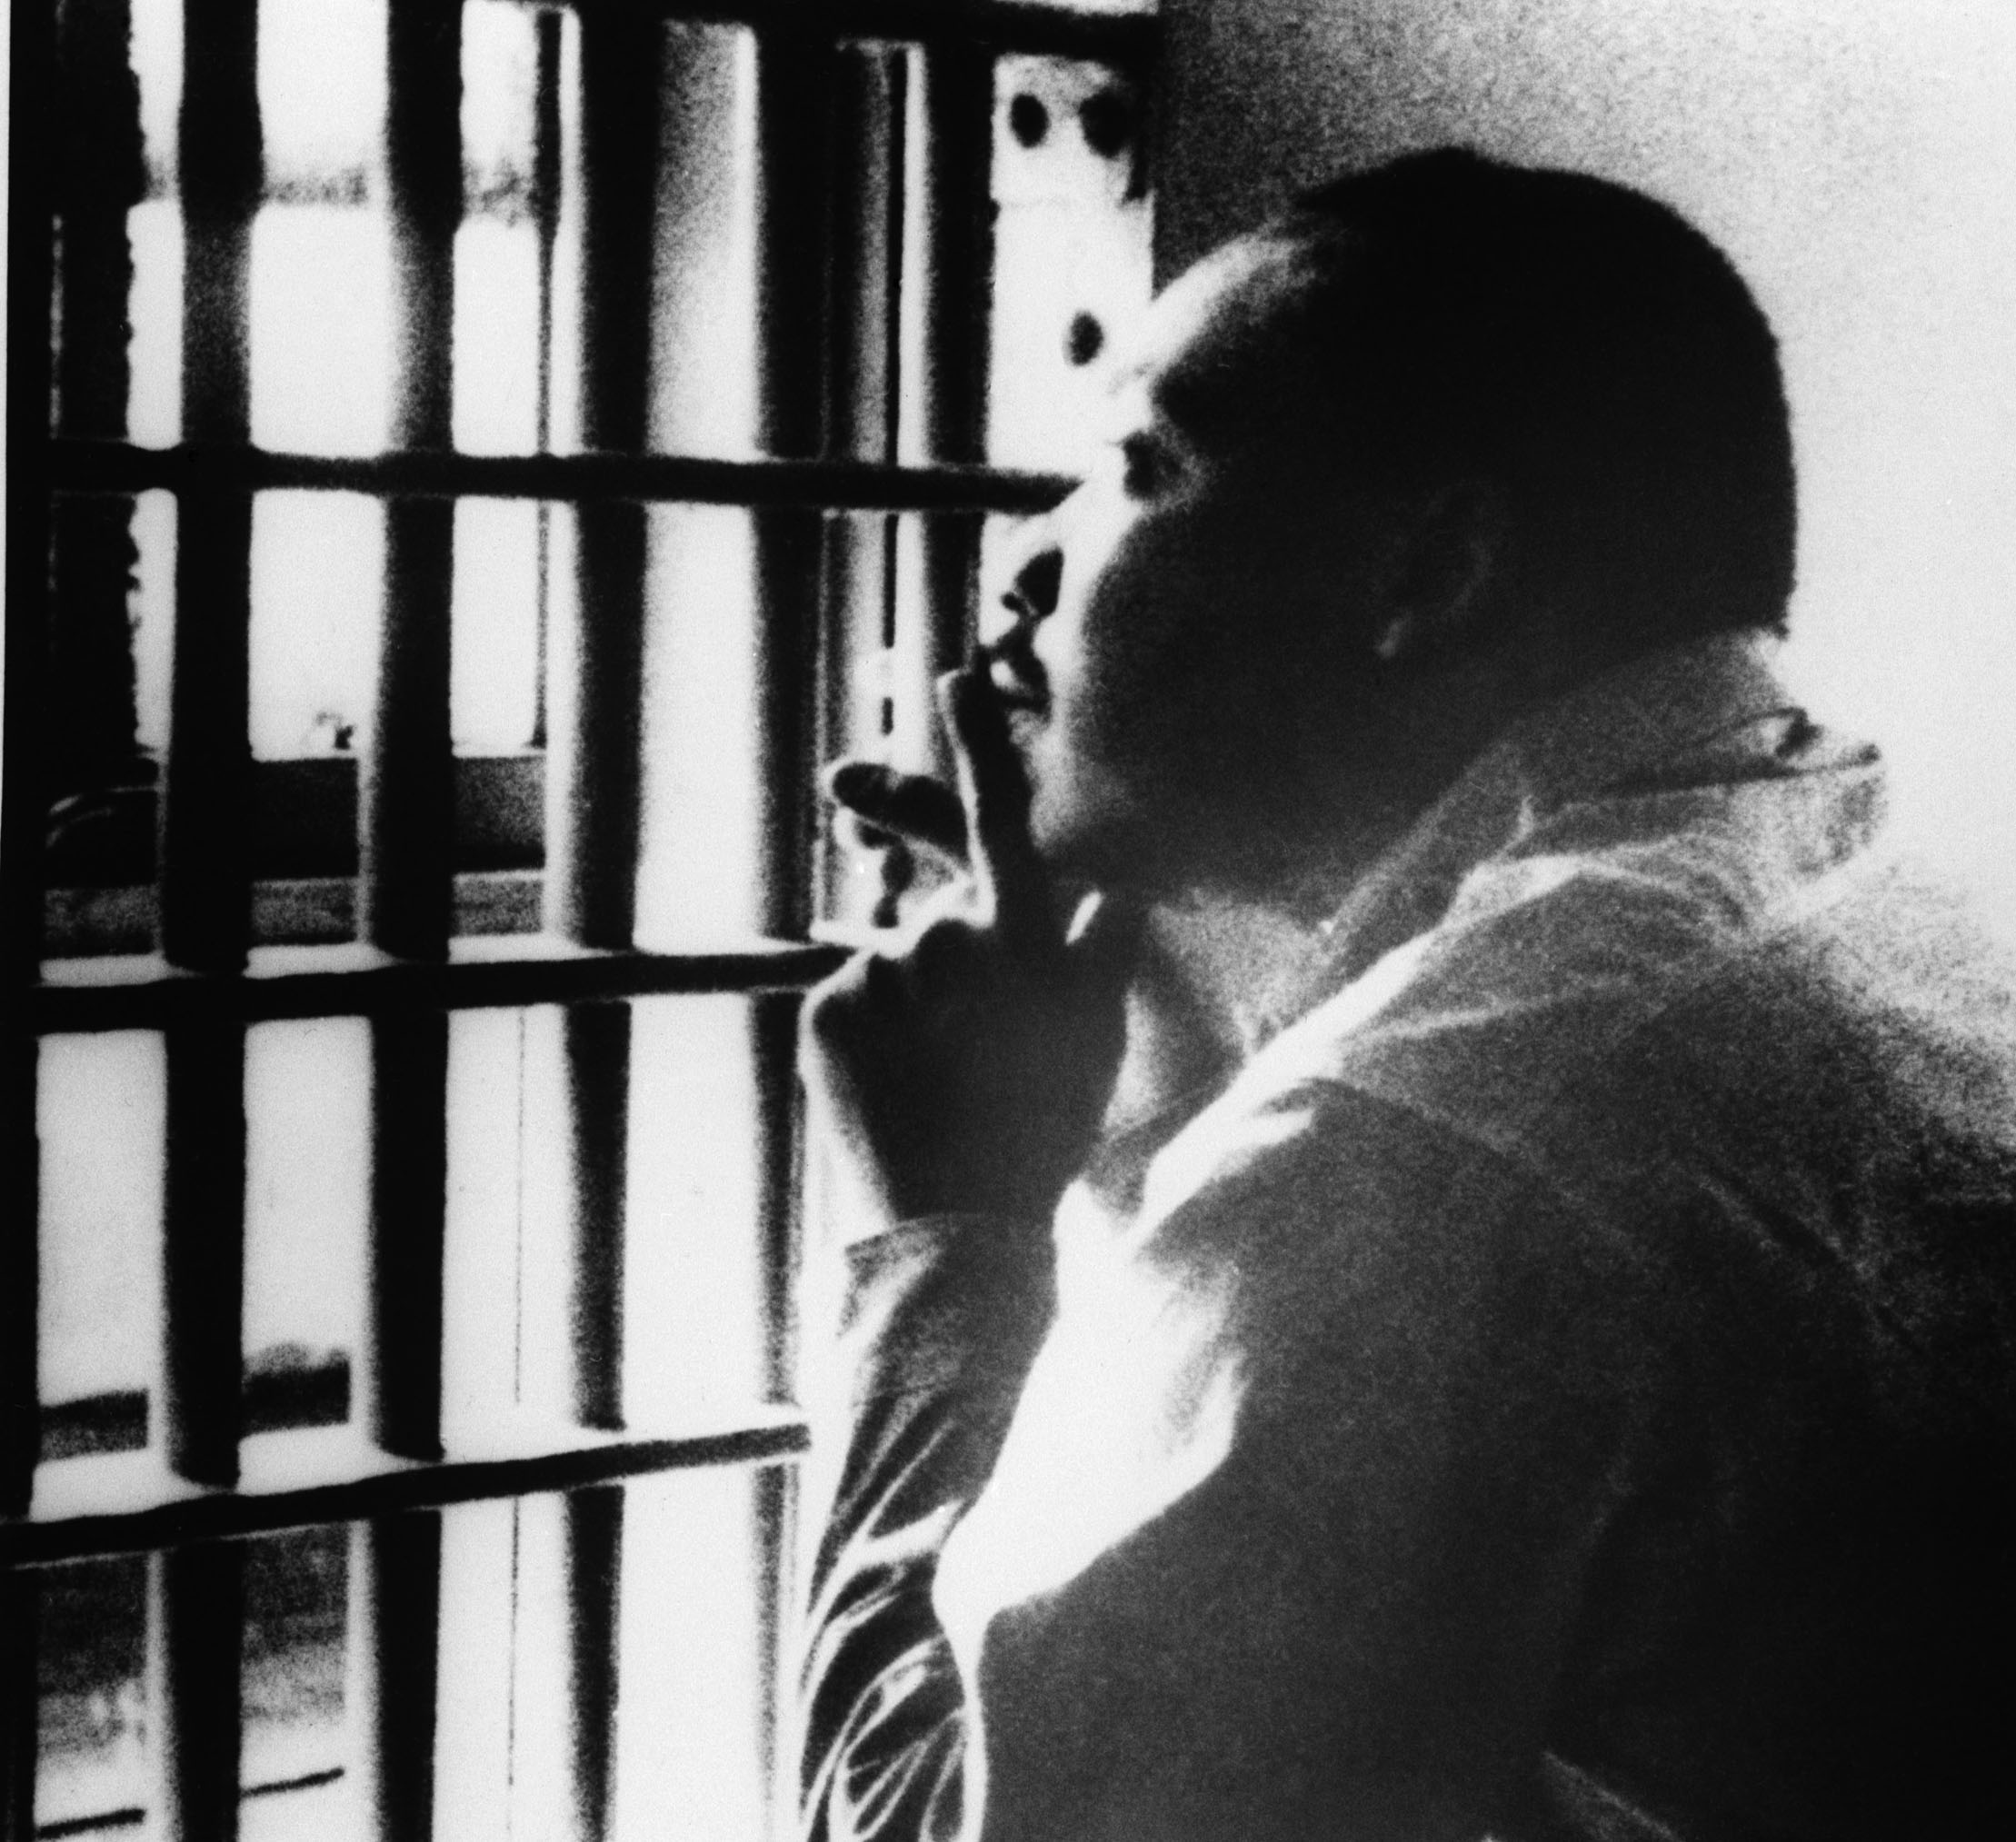 Martin luther king birmingham jail essay